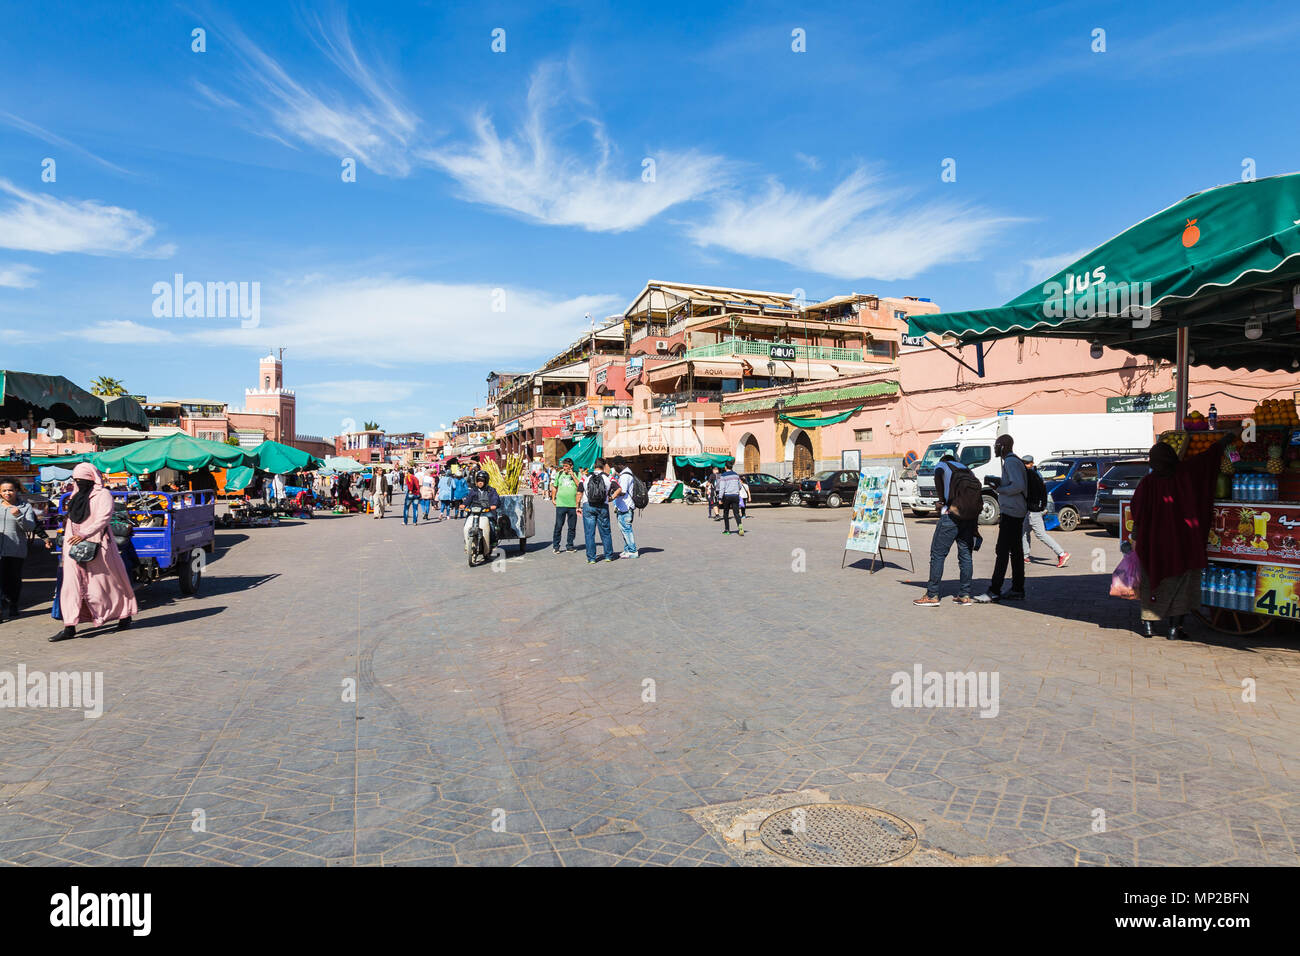 Street vendors in the Jamaa el Fna square, Marrakech, Morocco. - Stock Image